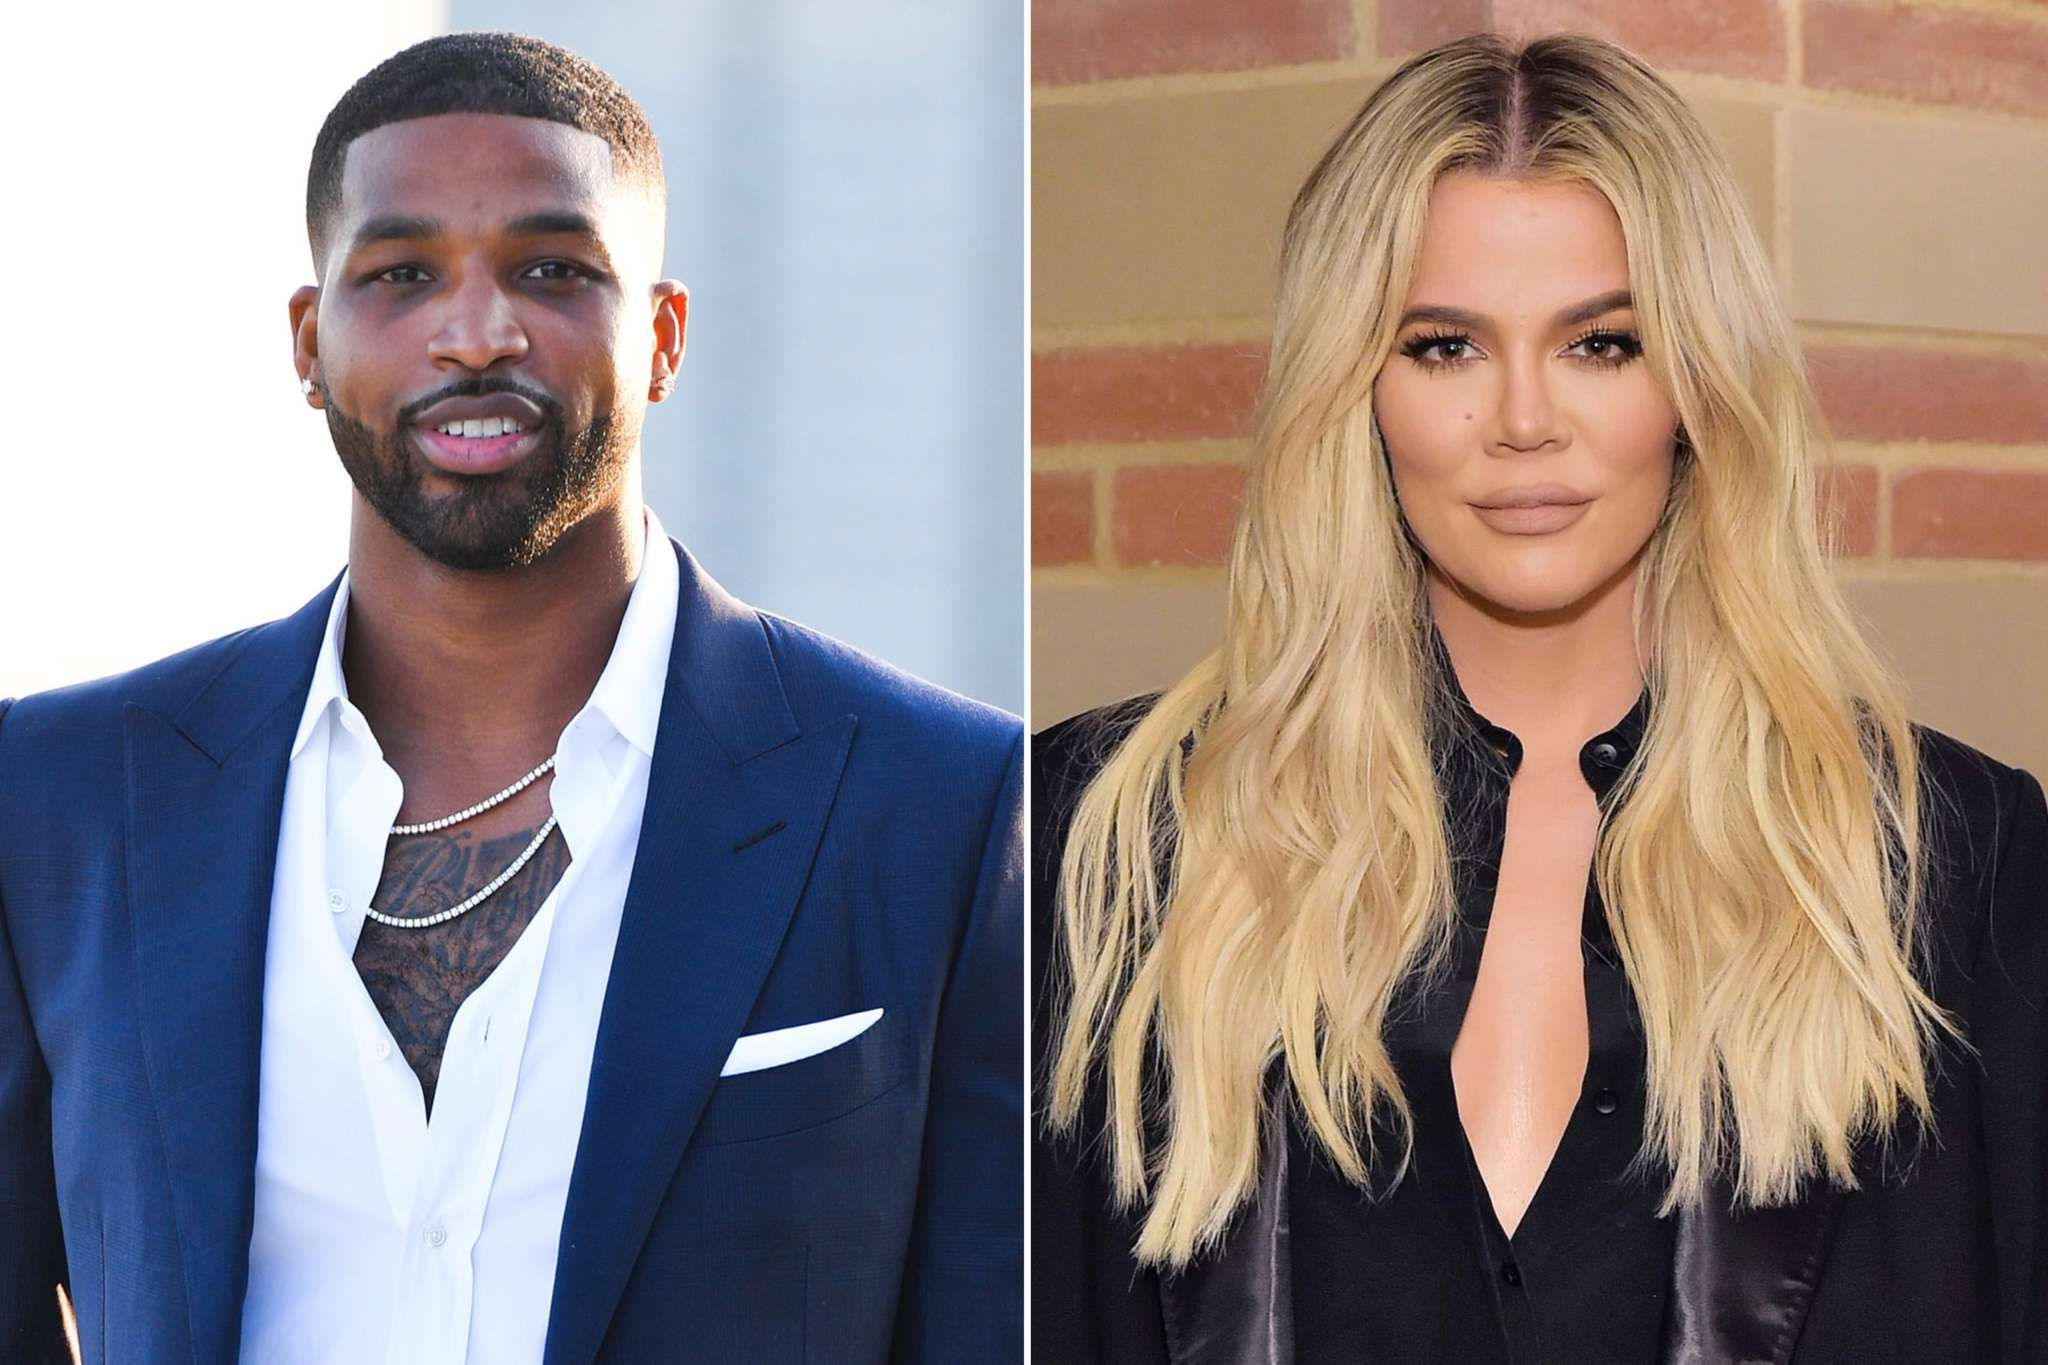 Khloe Kardashian Drops A Message About Loyalty And Fans Guess That Tristan Thompson Played Her Again #KanyeWest, #KhloeKardashian, #TristanThompson celebrityinsider.org #Entertainment #celebrityinsider #celebritynews #celebrities #celebrity